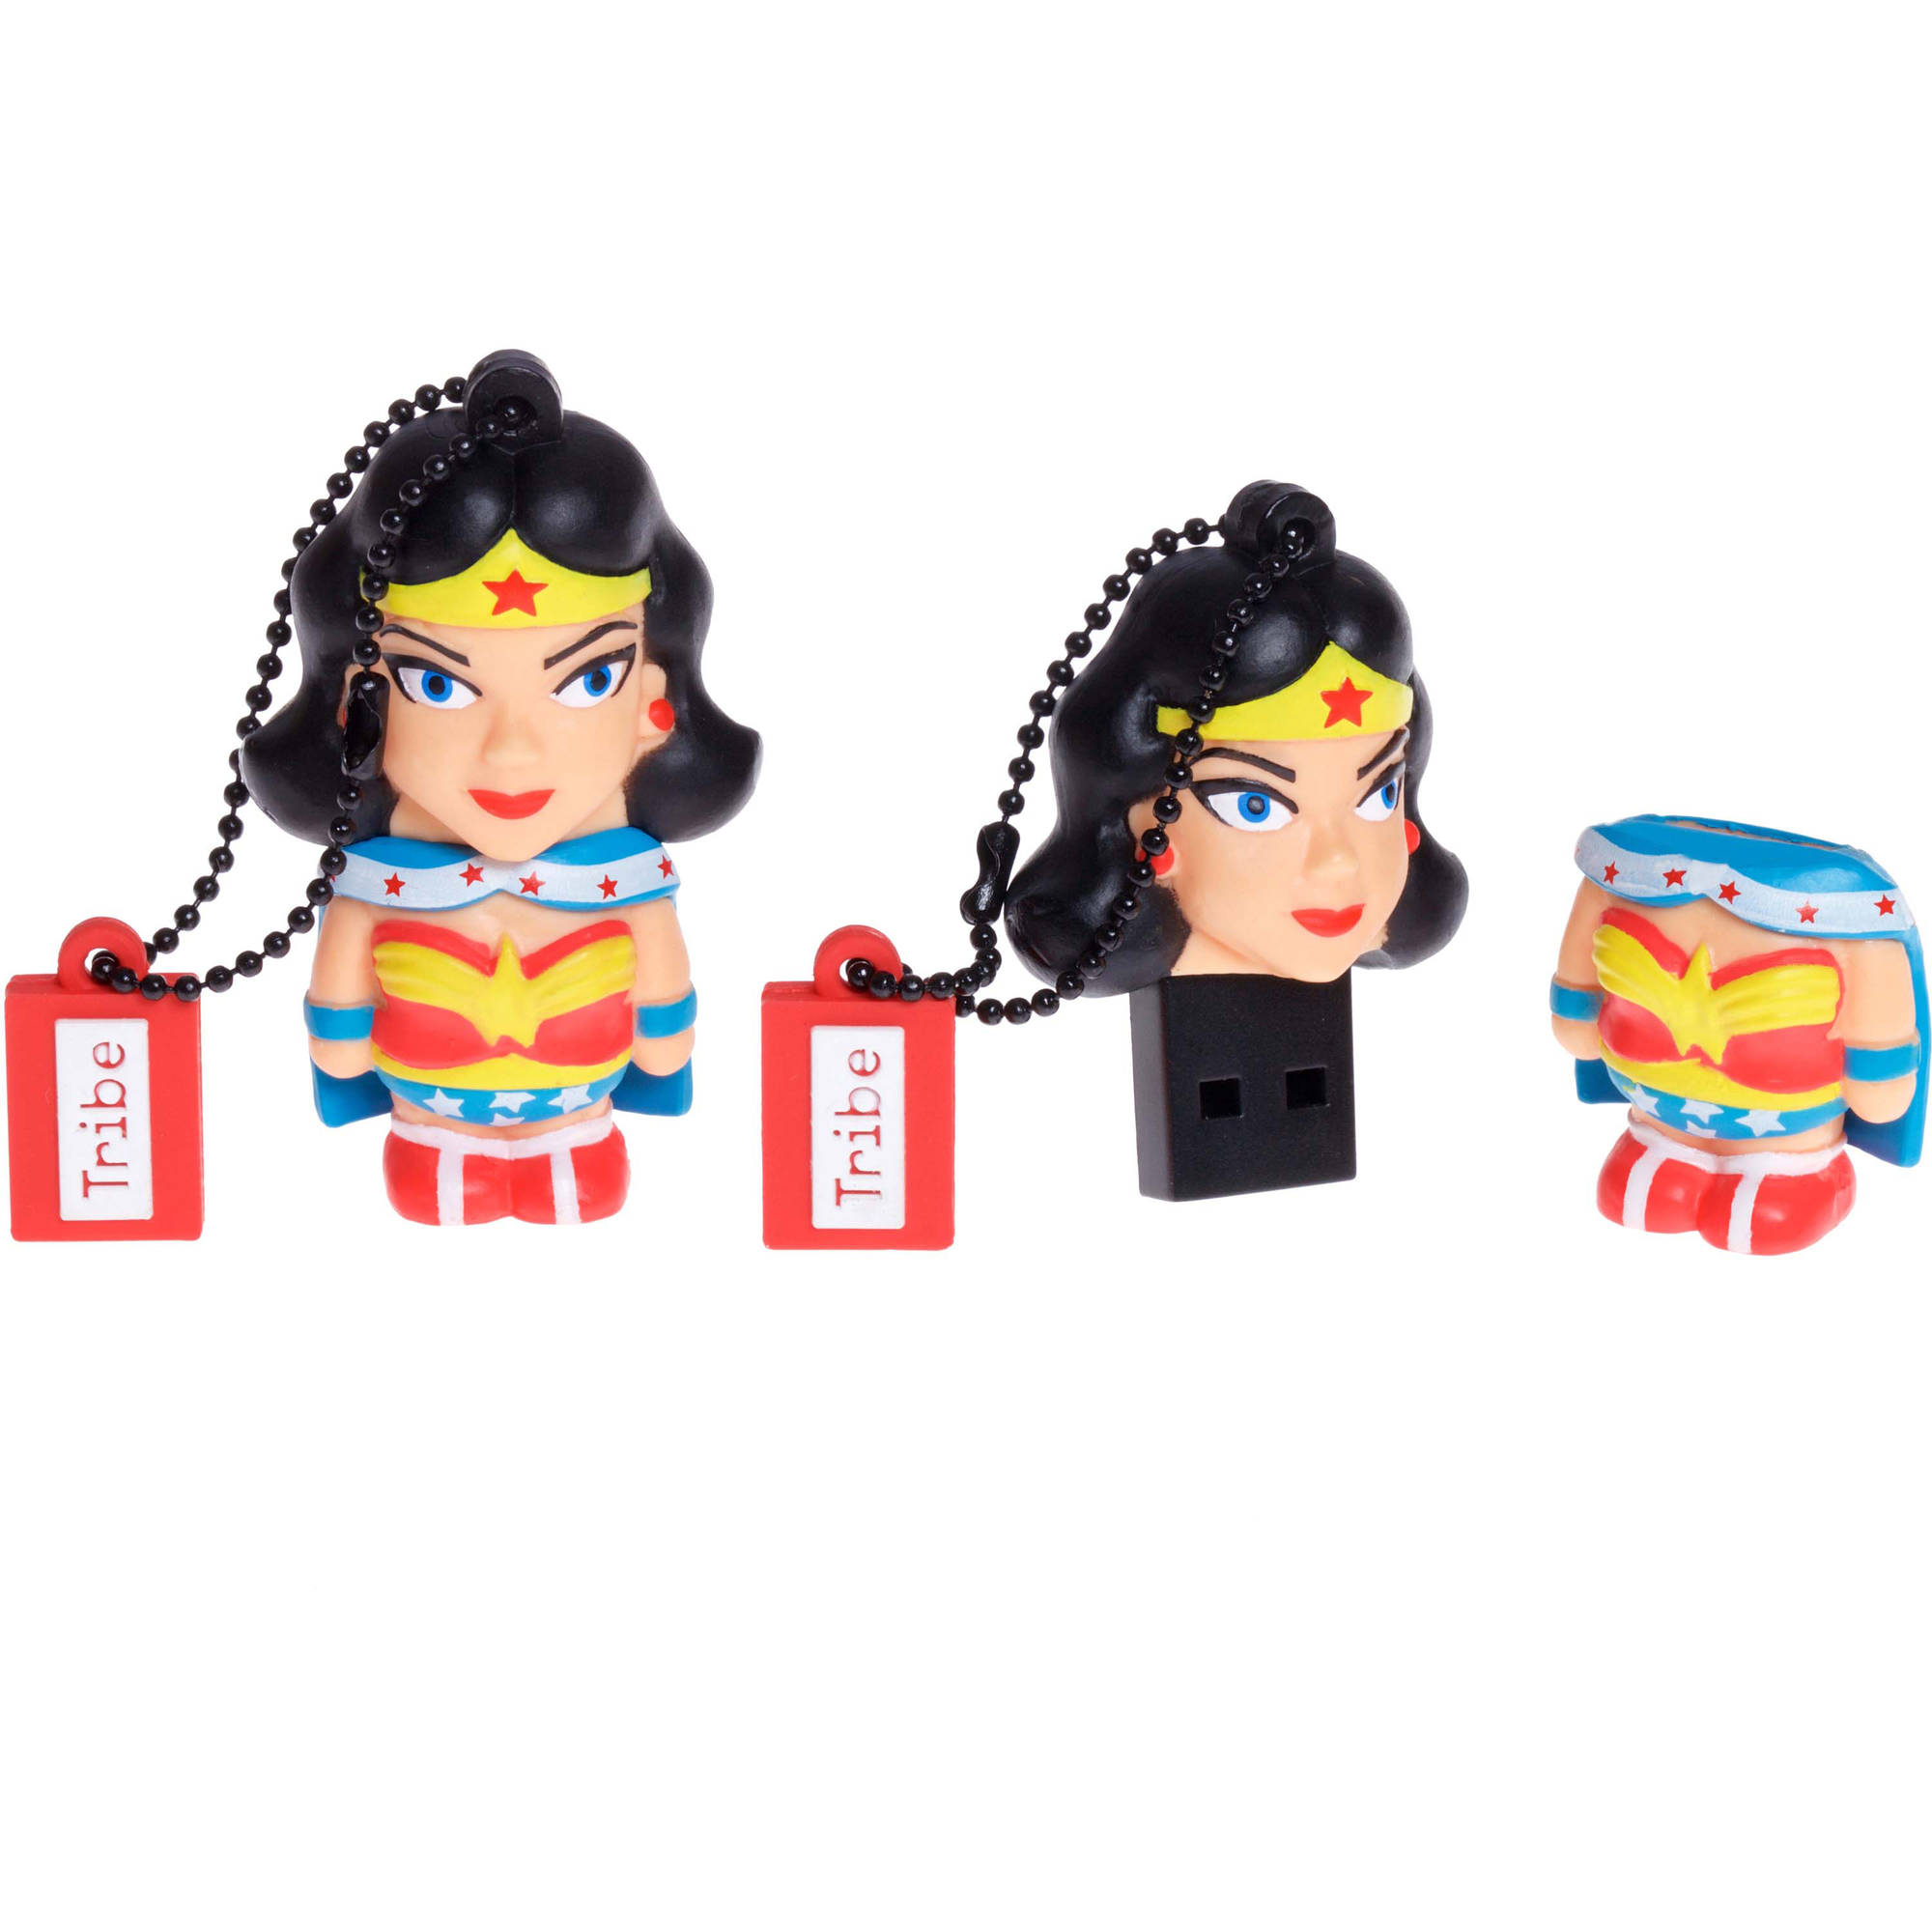 Tribe USB Flash Drive 16GB DC Wonder Woman Collectible Figure